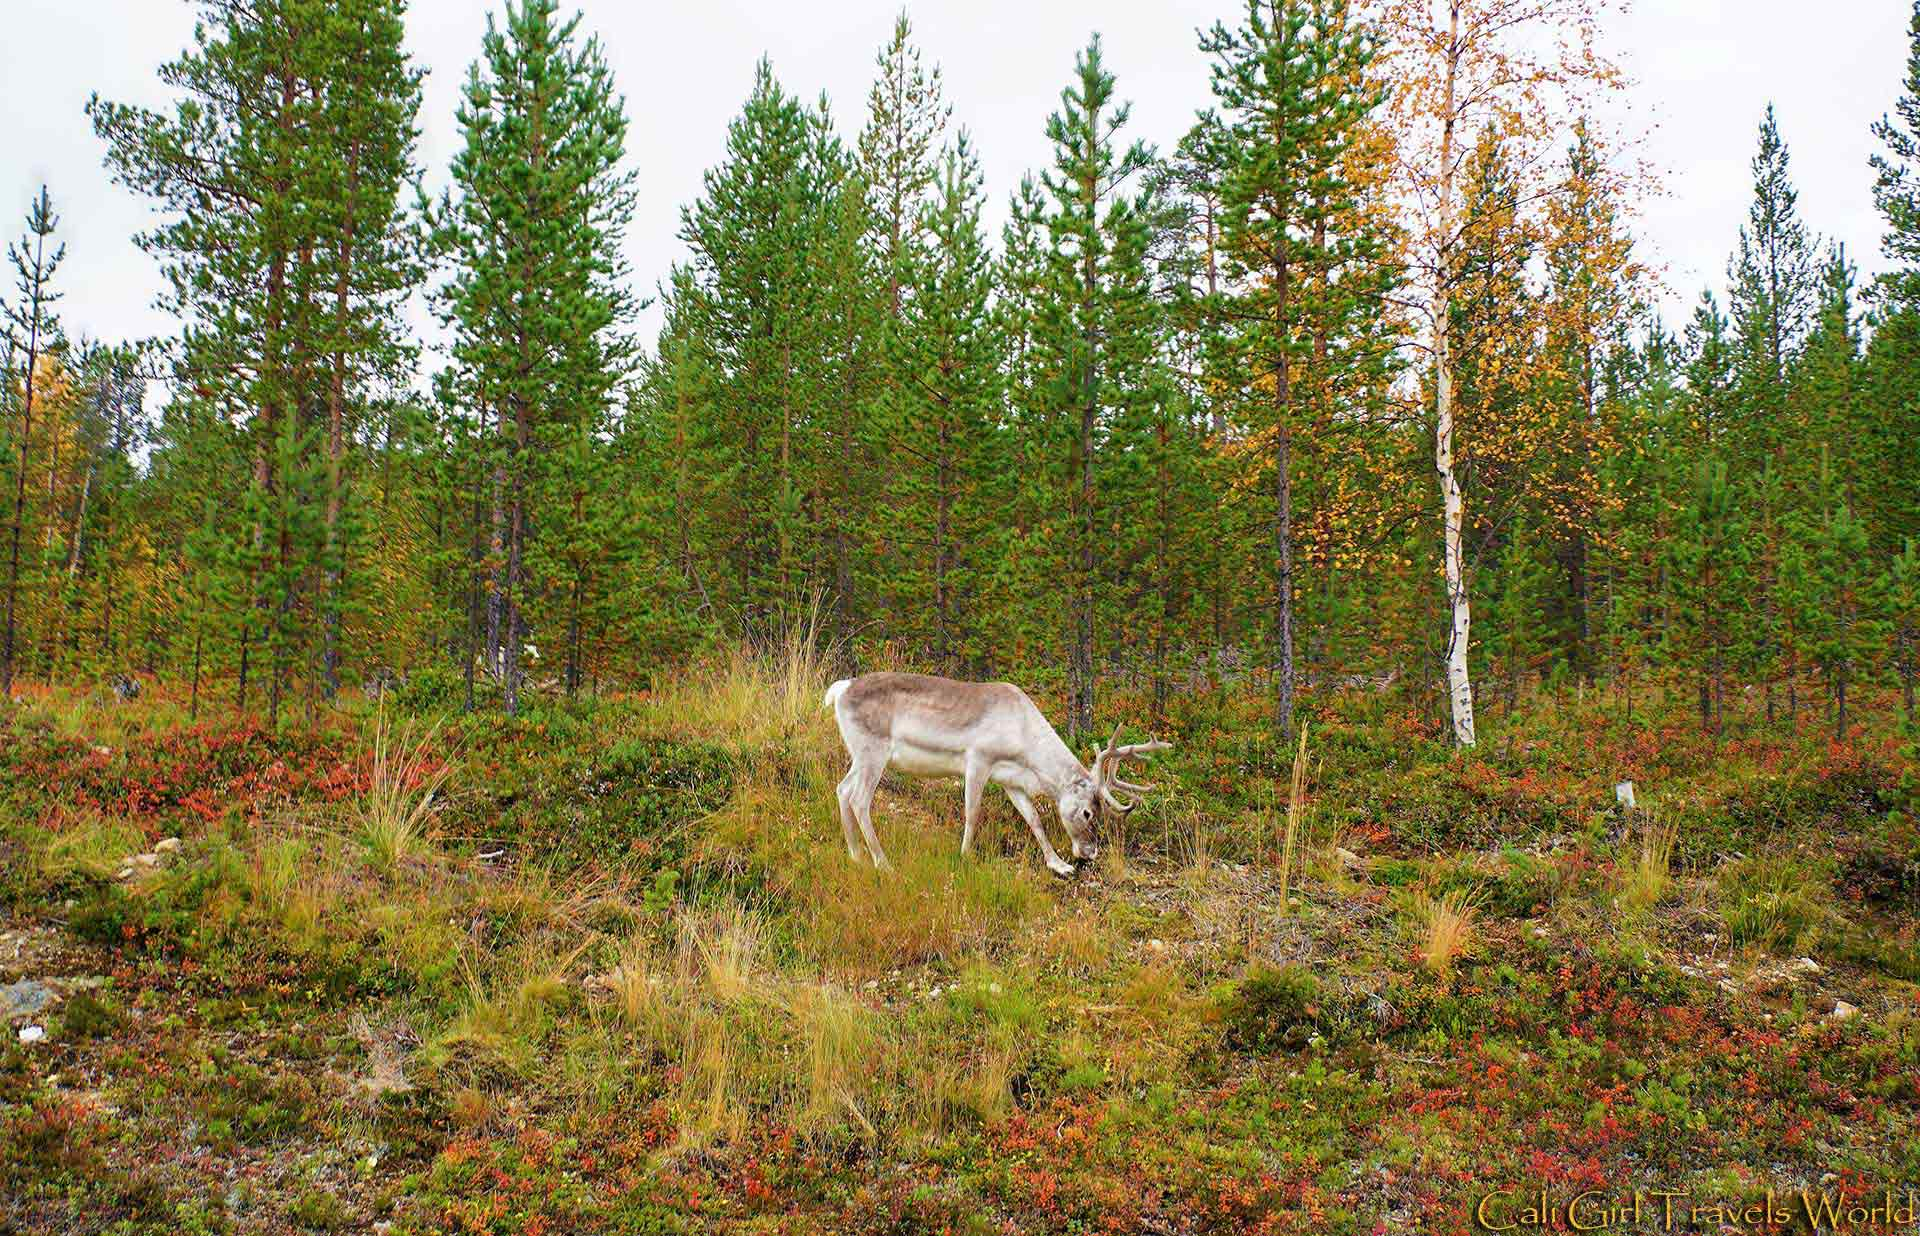 A reindeer deep in the forest of Lapland among the autumn colors.